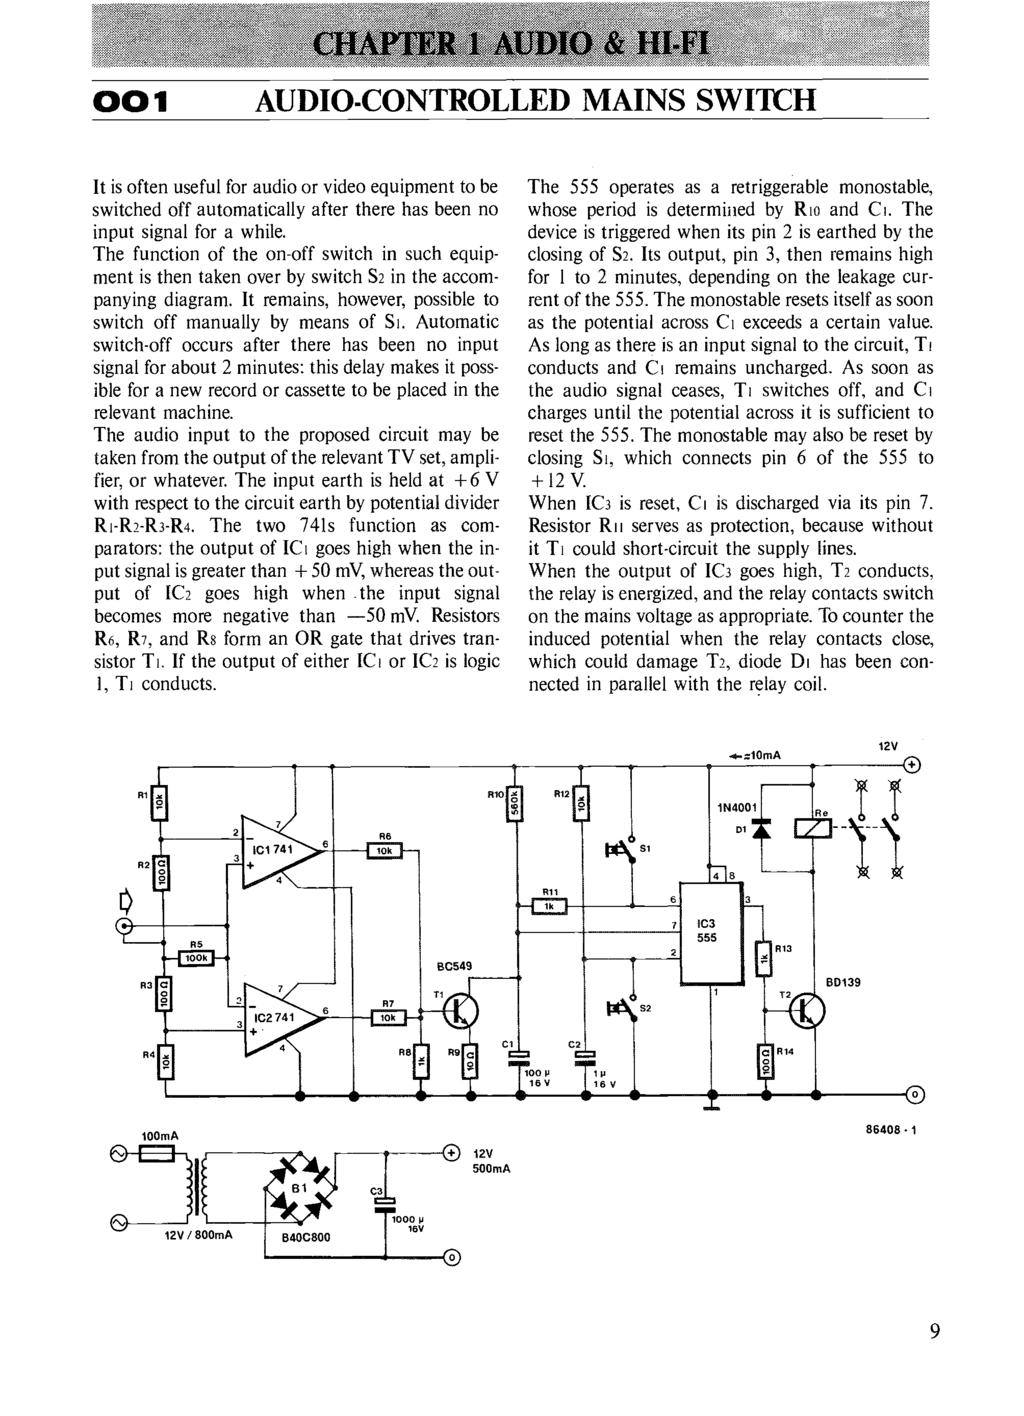 Circuits Elektor Electronics Pdf Ca3162 Handheld Voltmeter Circuit Diagram Chapter I Audio 8 1 Controlled Mains Switch It Is Often Useful